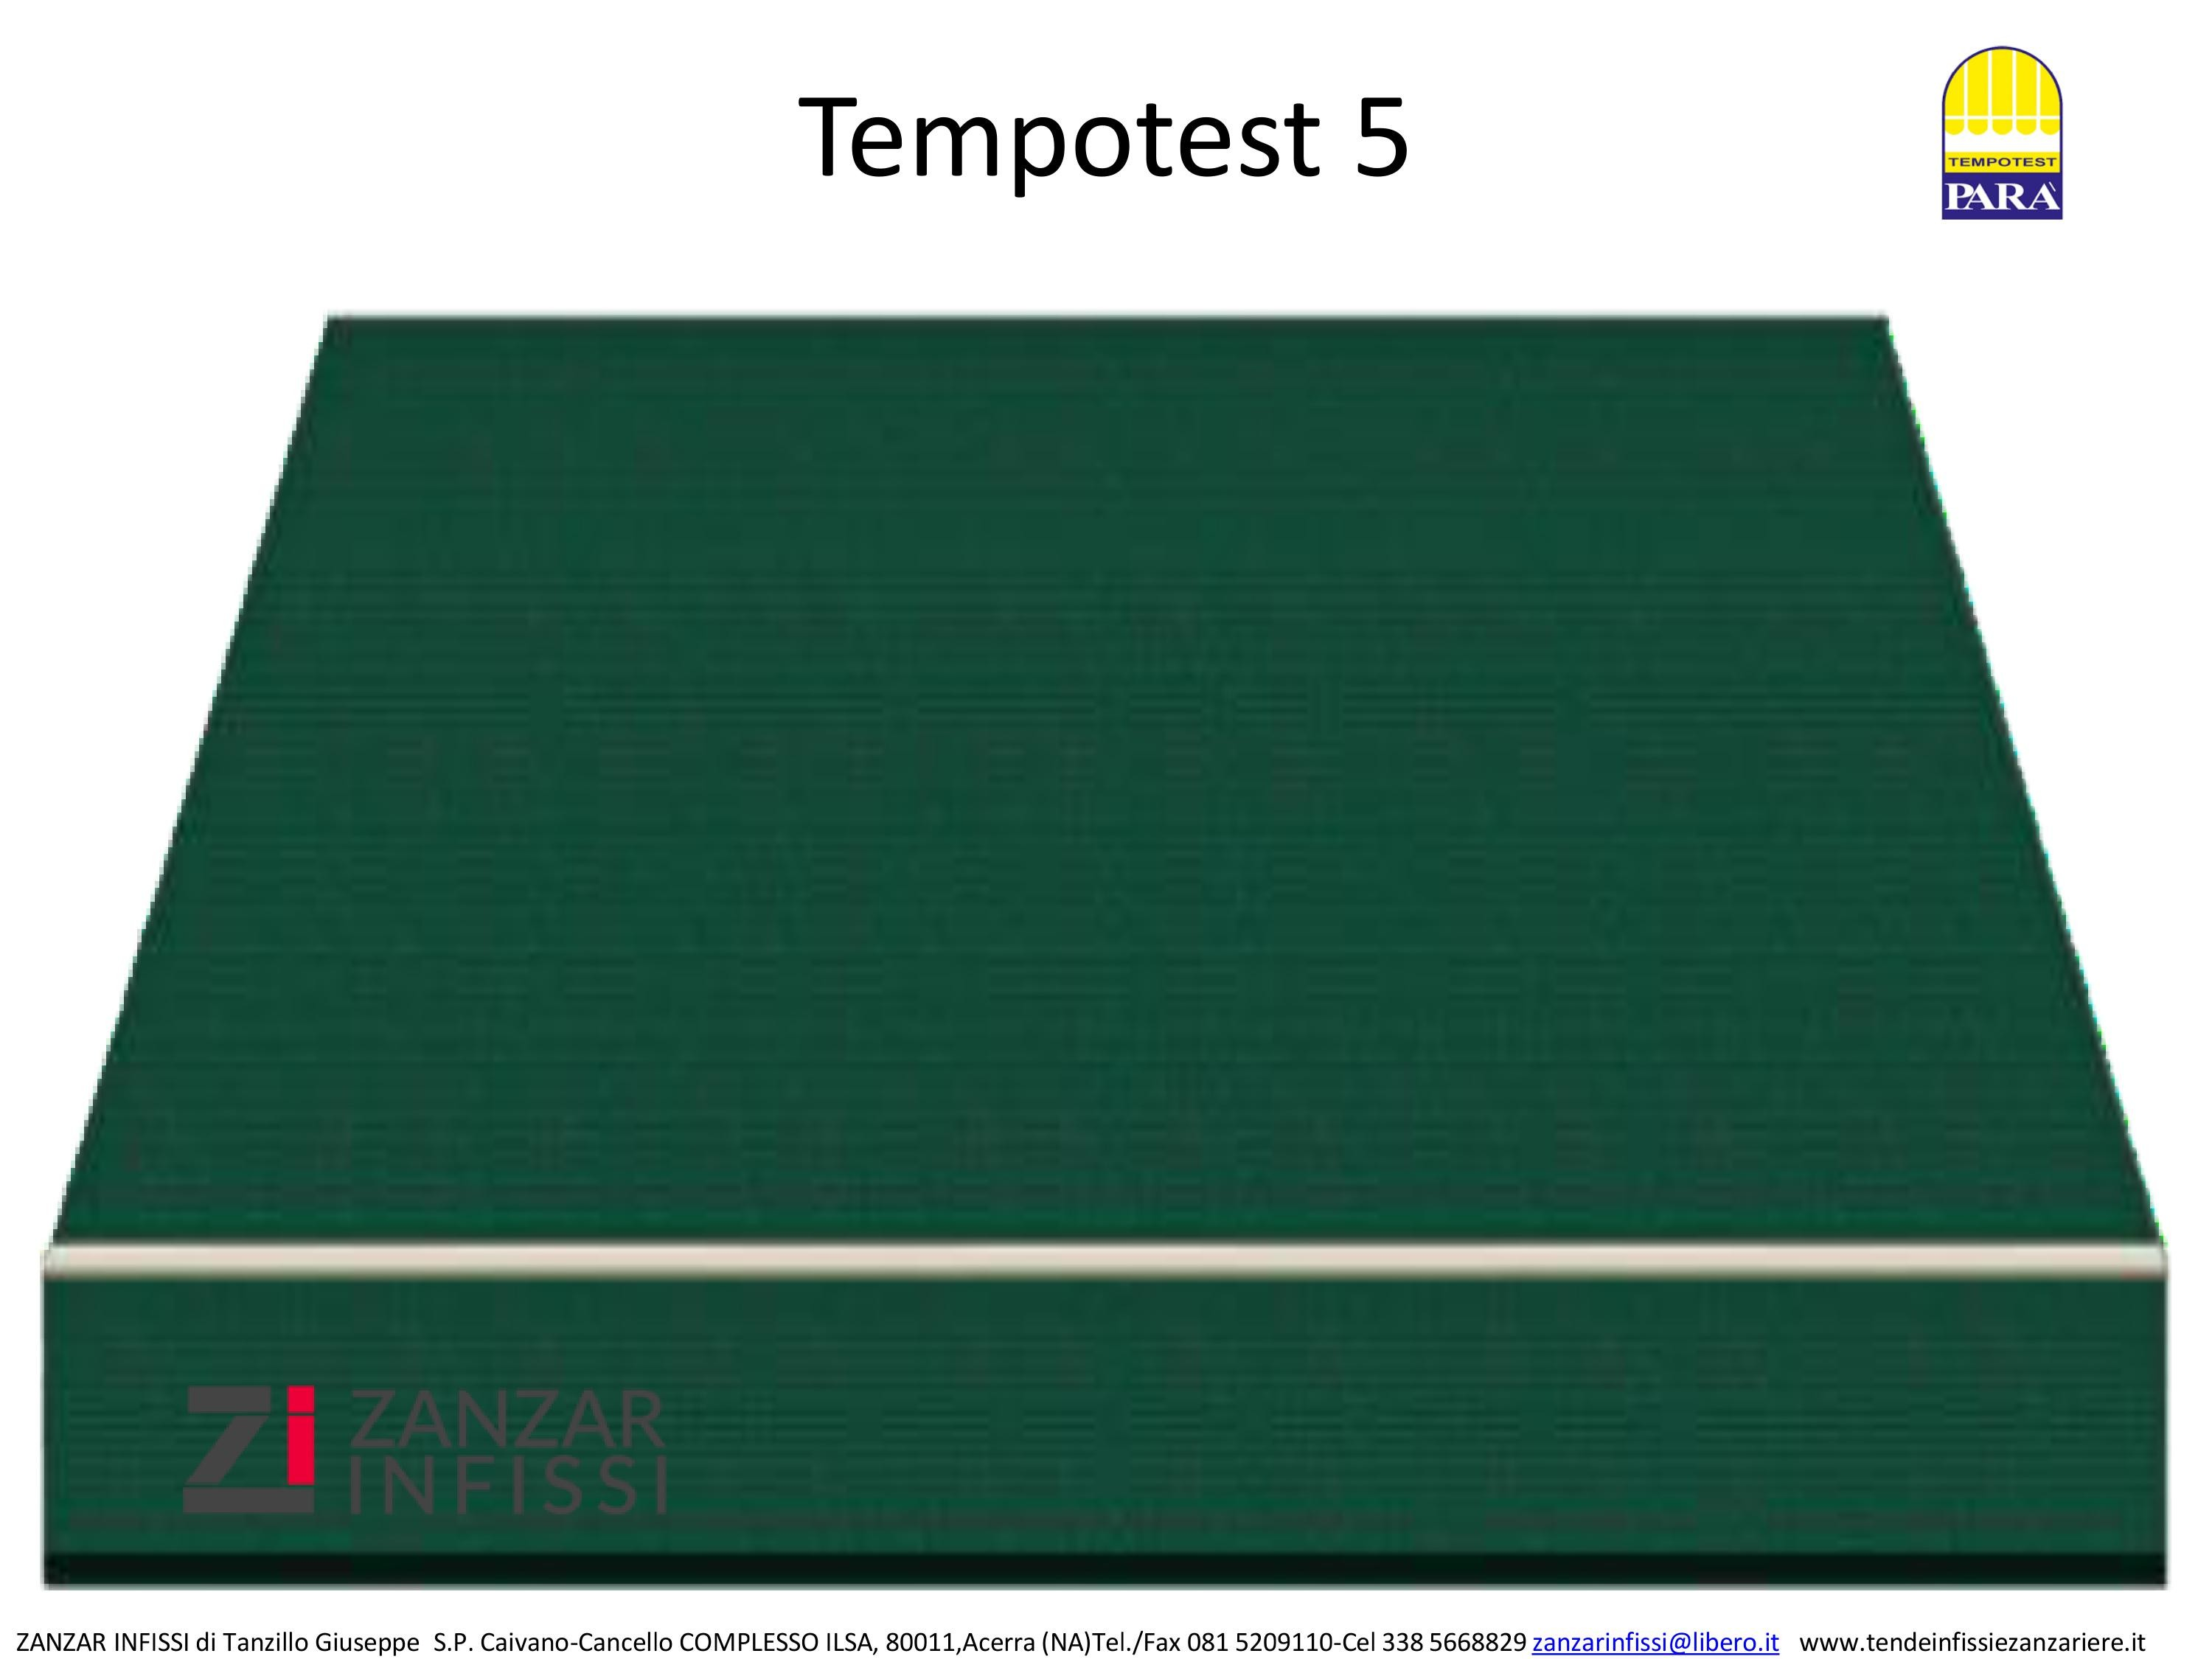 Tempotest 5